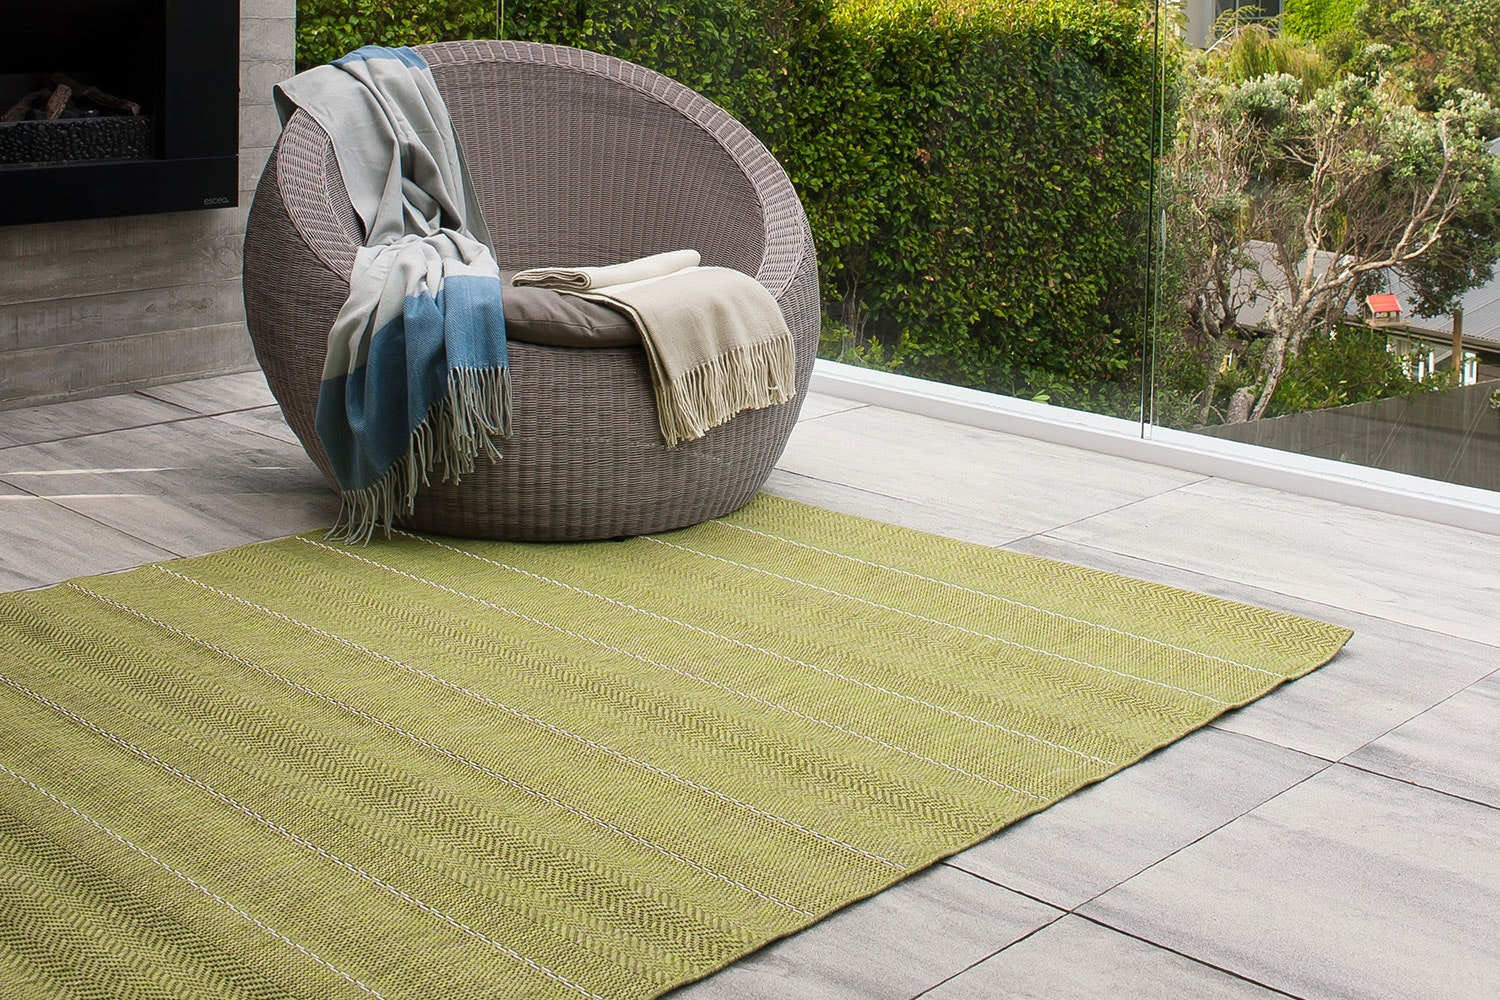 Cape Cod Rugs by Limon (1.2 x 1.7 m) Green